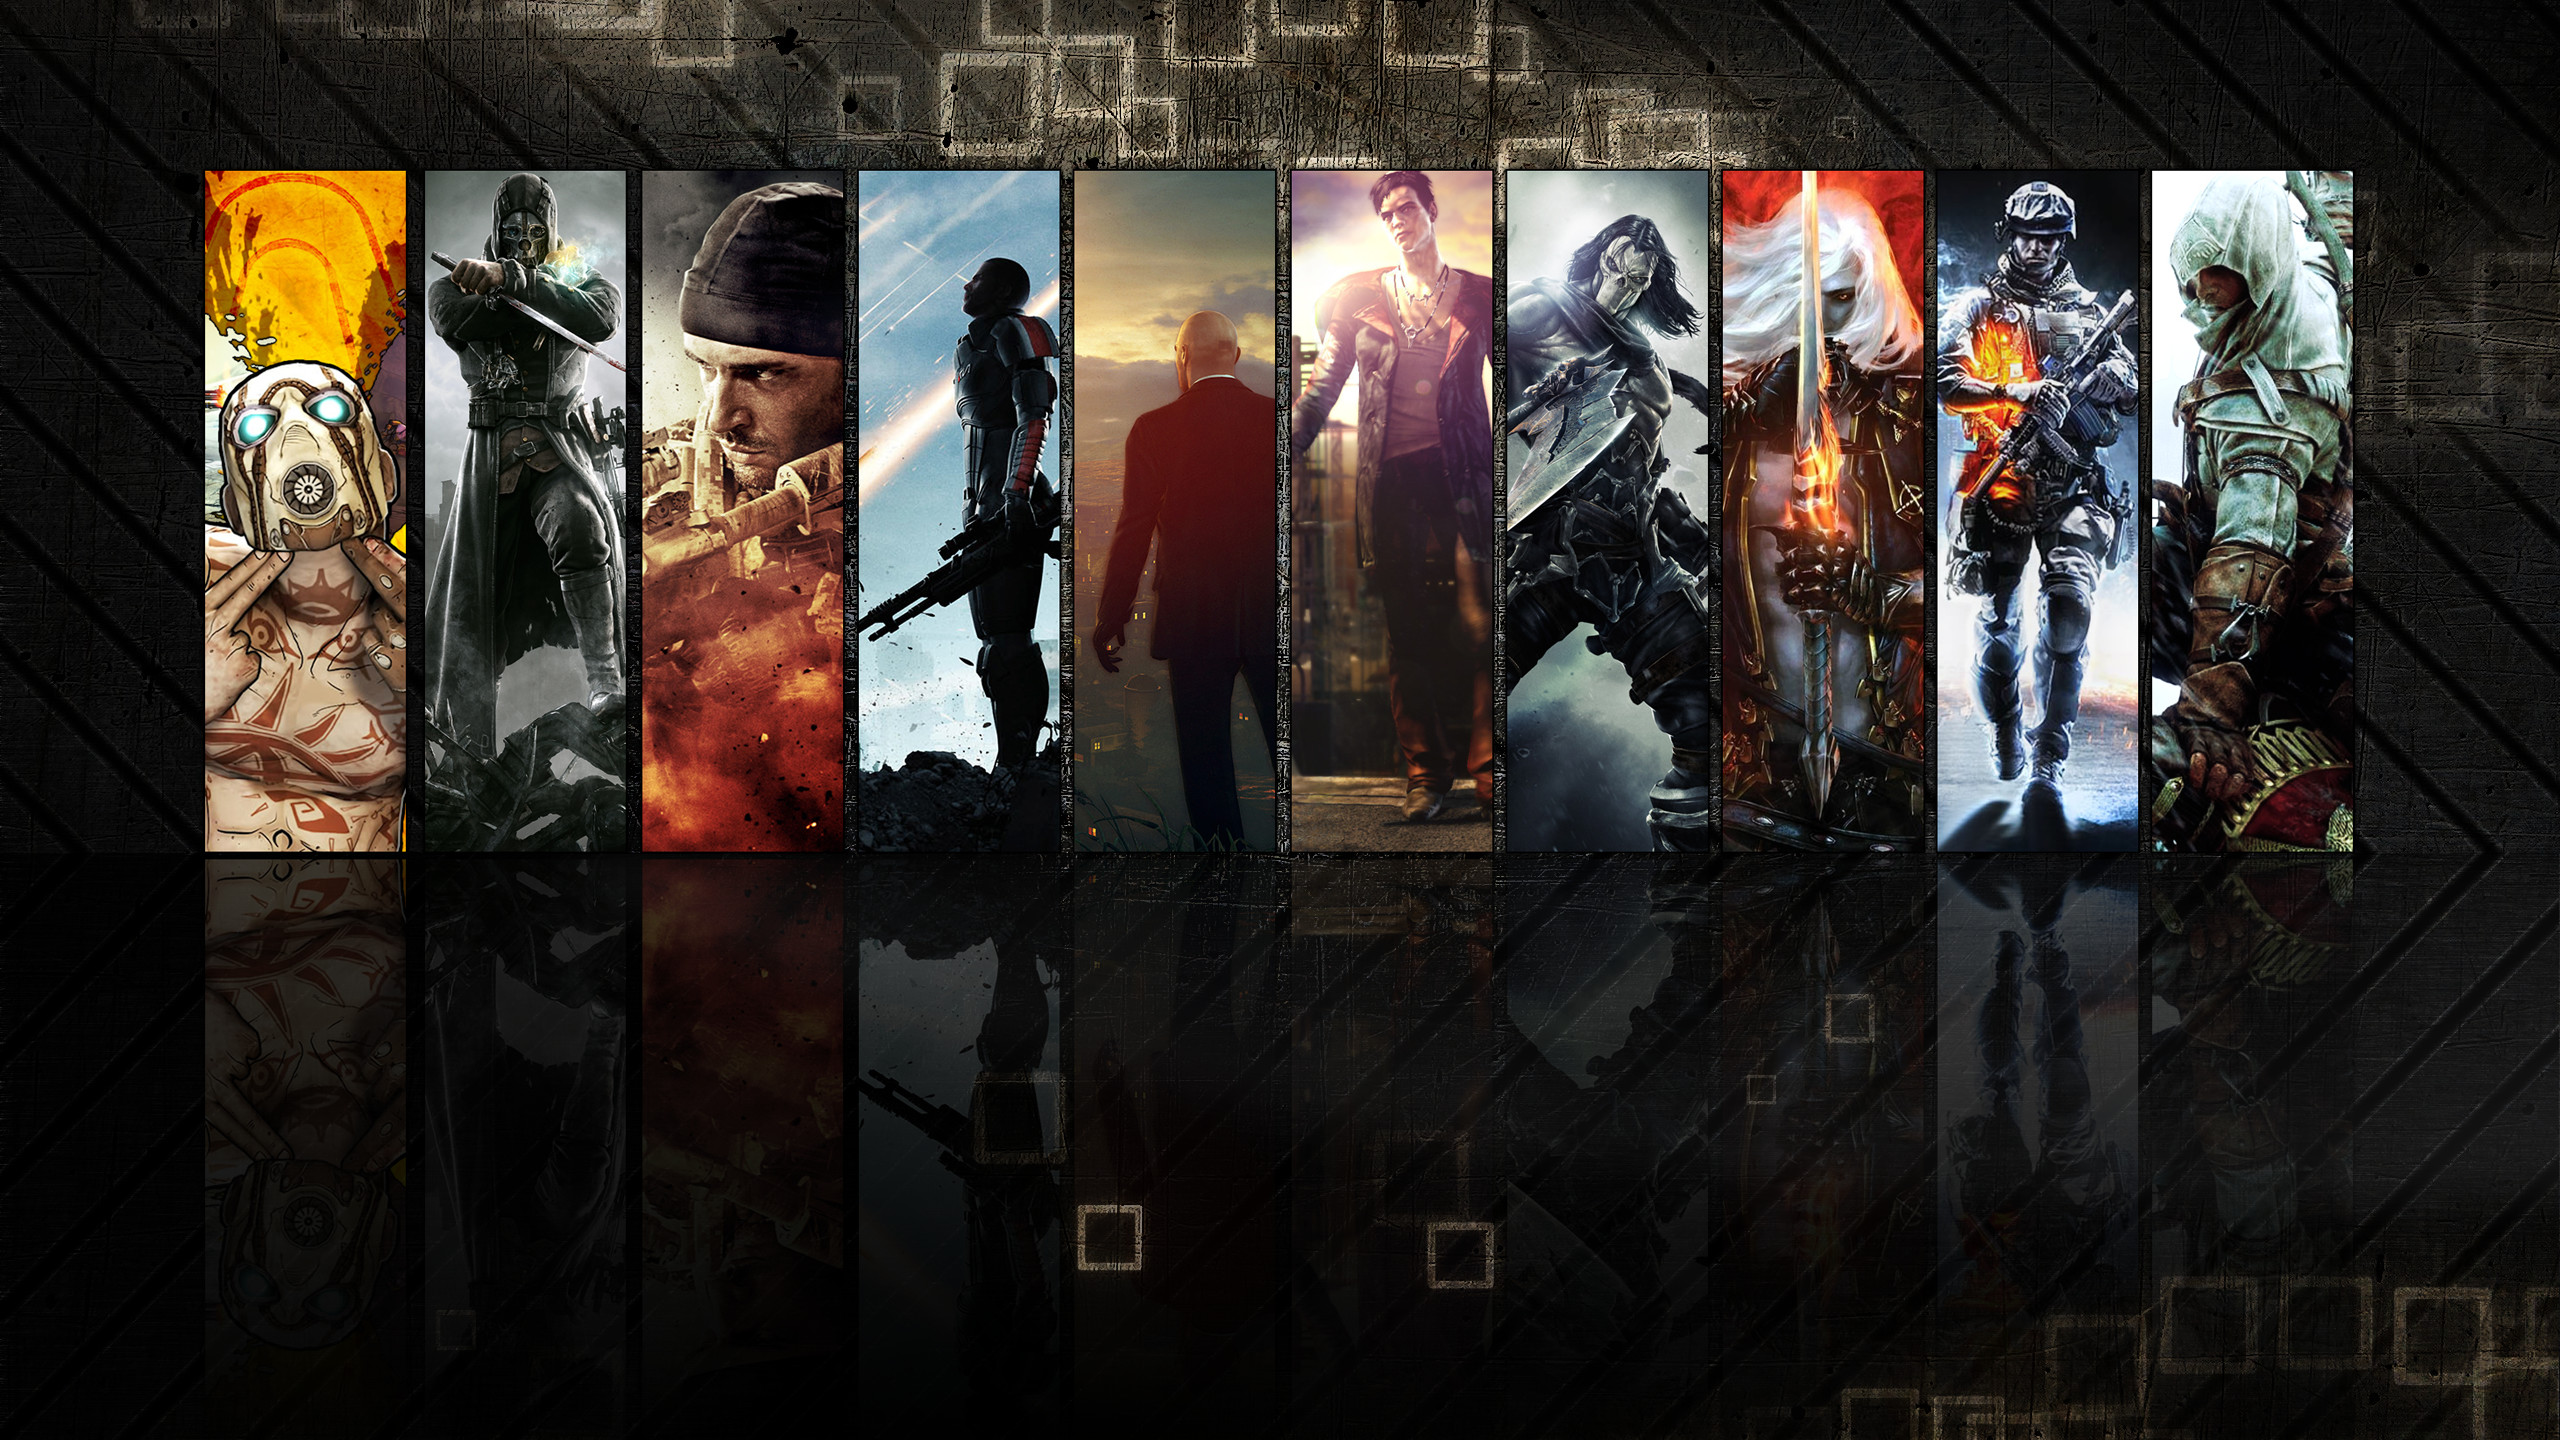 10 Latest Video Game Wallpapers 2560x1440 Full Hd 1080p: Gaming Wallpapers 2560 X 1440 (76+ Images